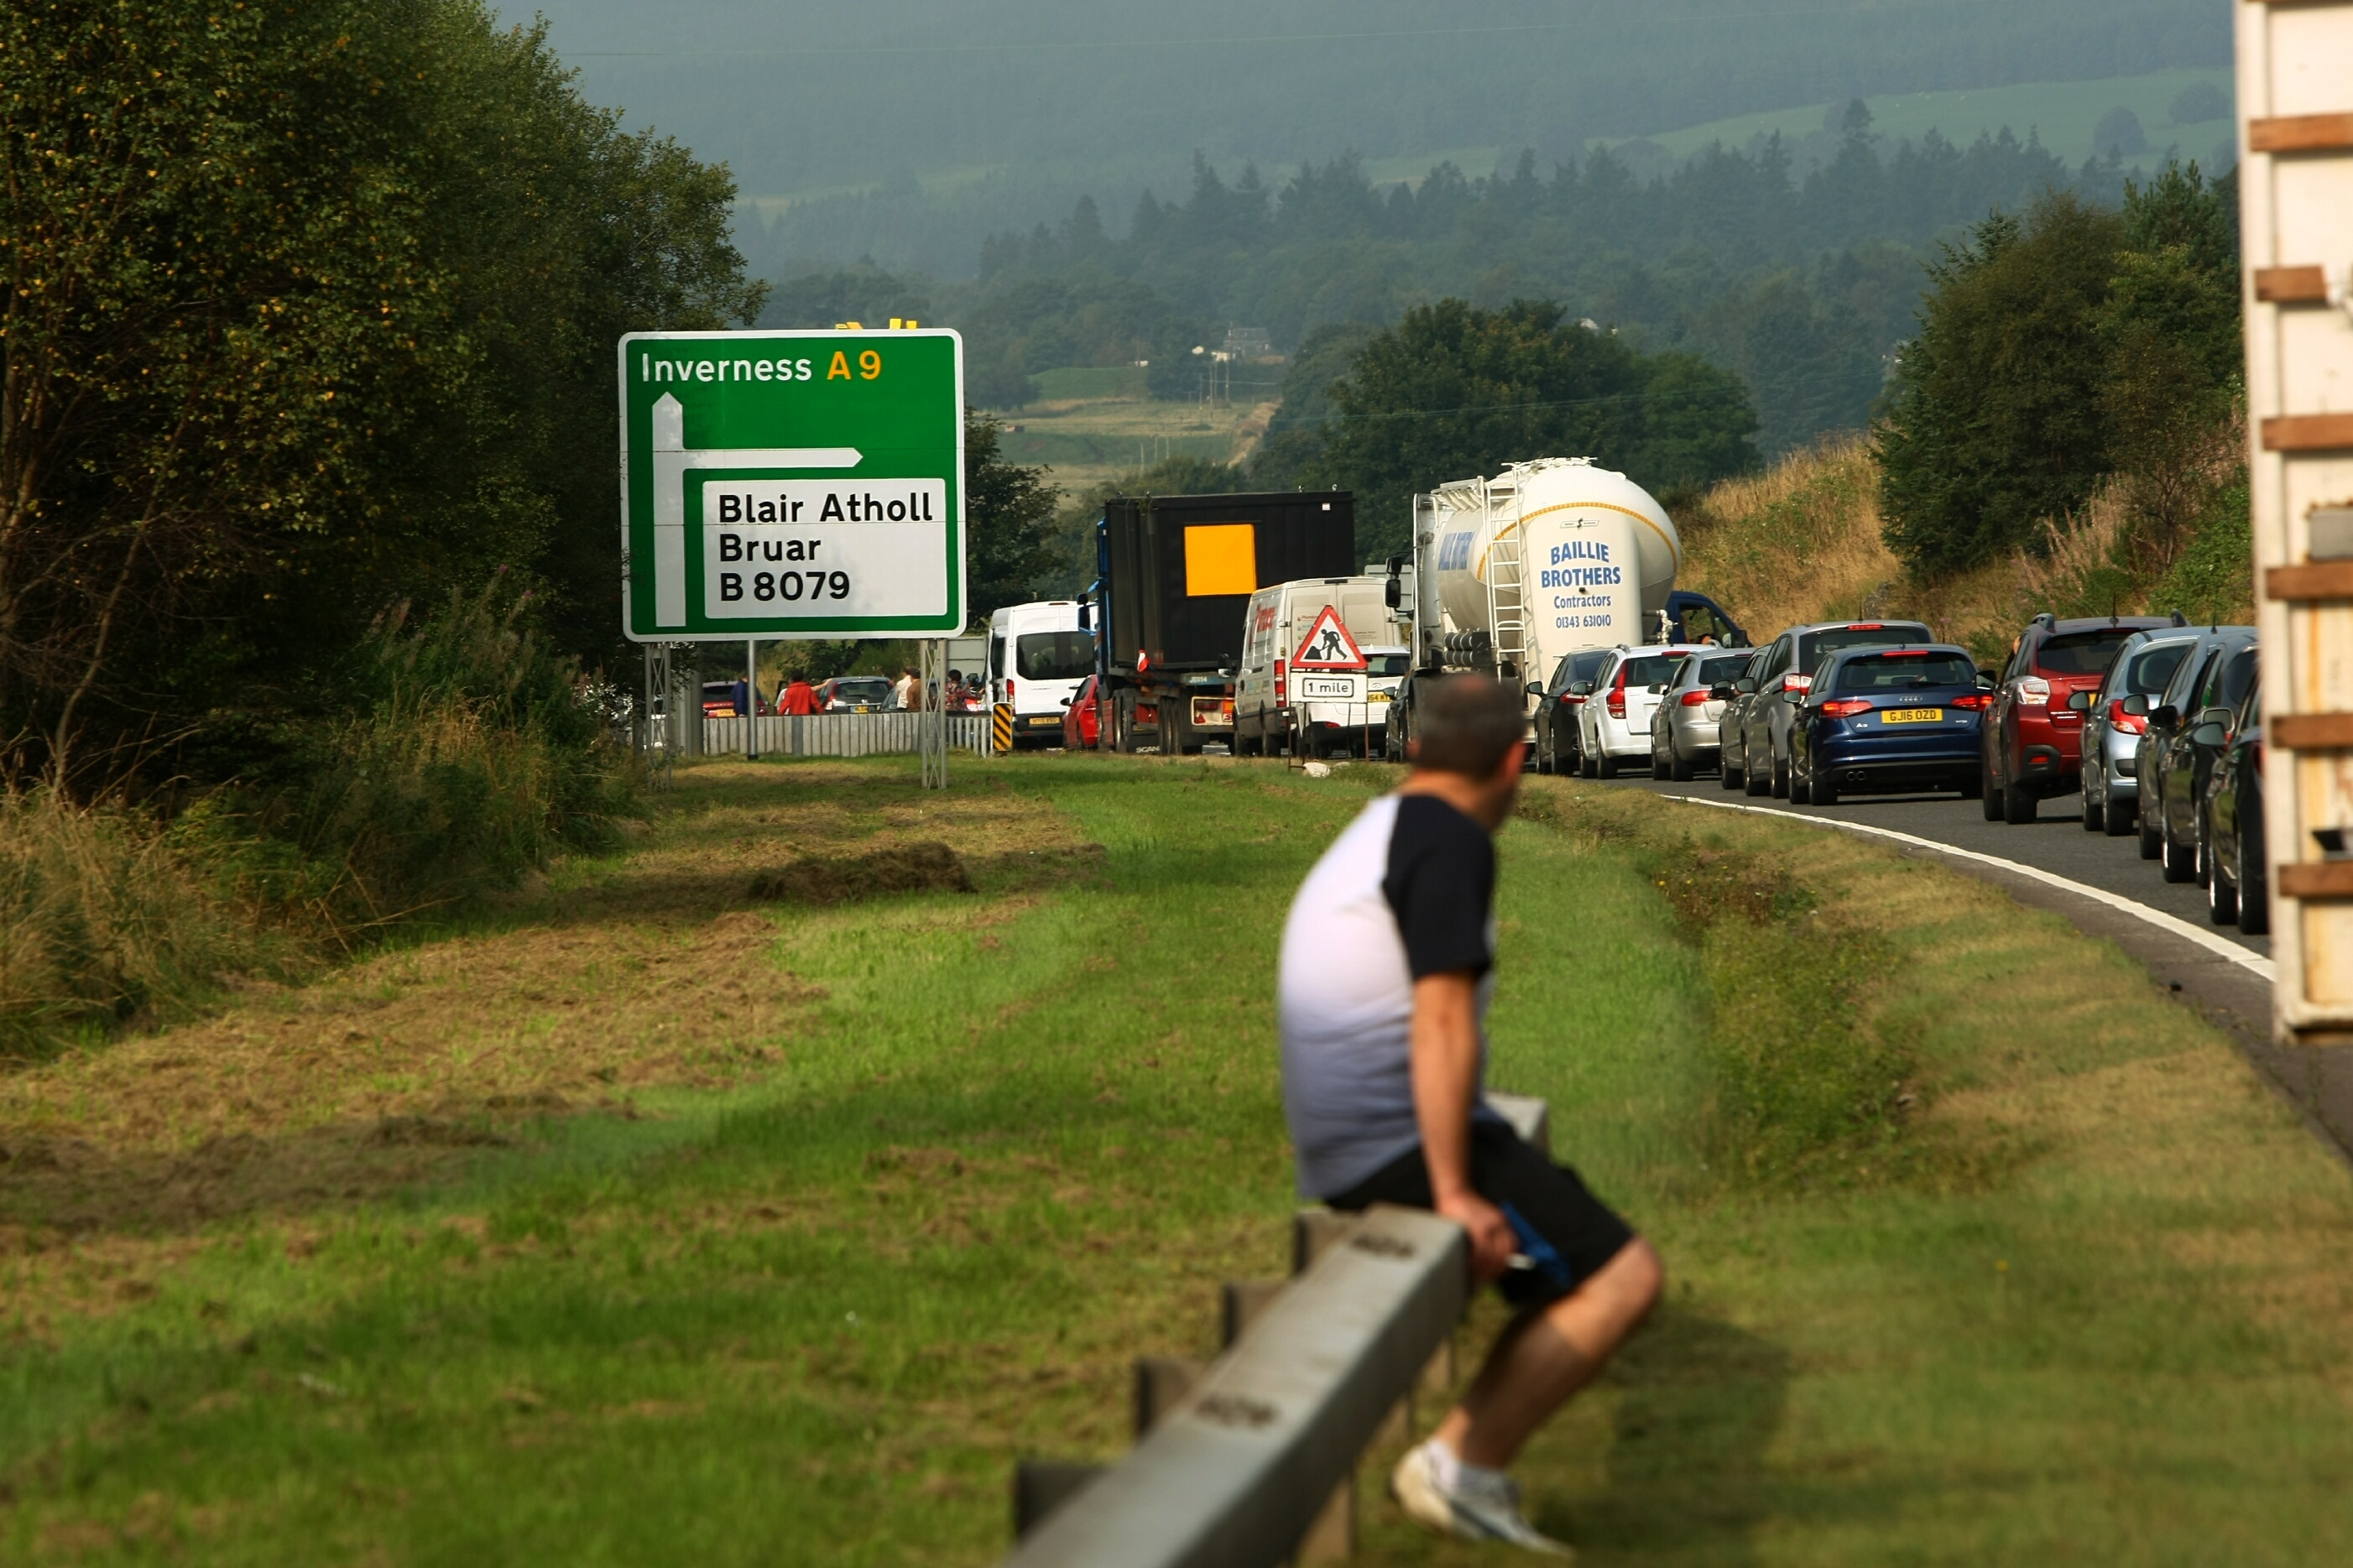 Drivers waiting to find out when the A9 will re-open following an accident near Blair Atholl.